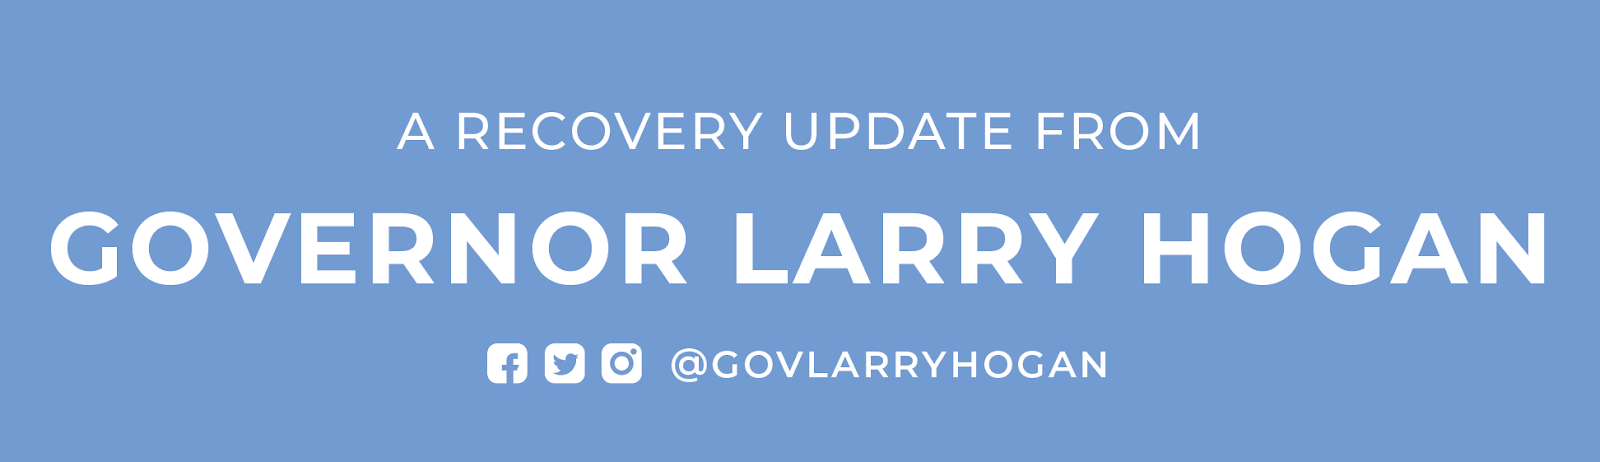 A Recovery Update from Governor Larry Hogan